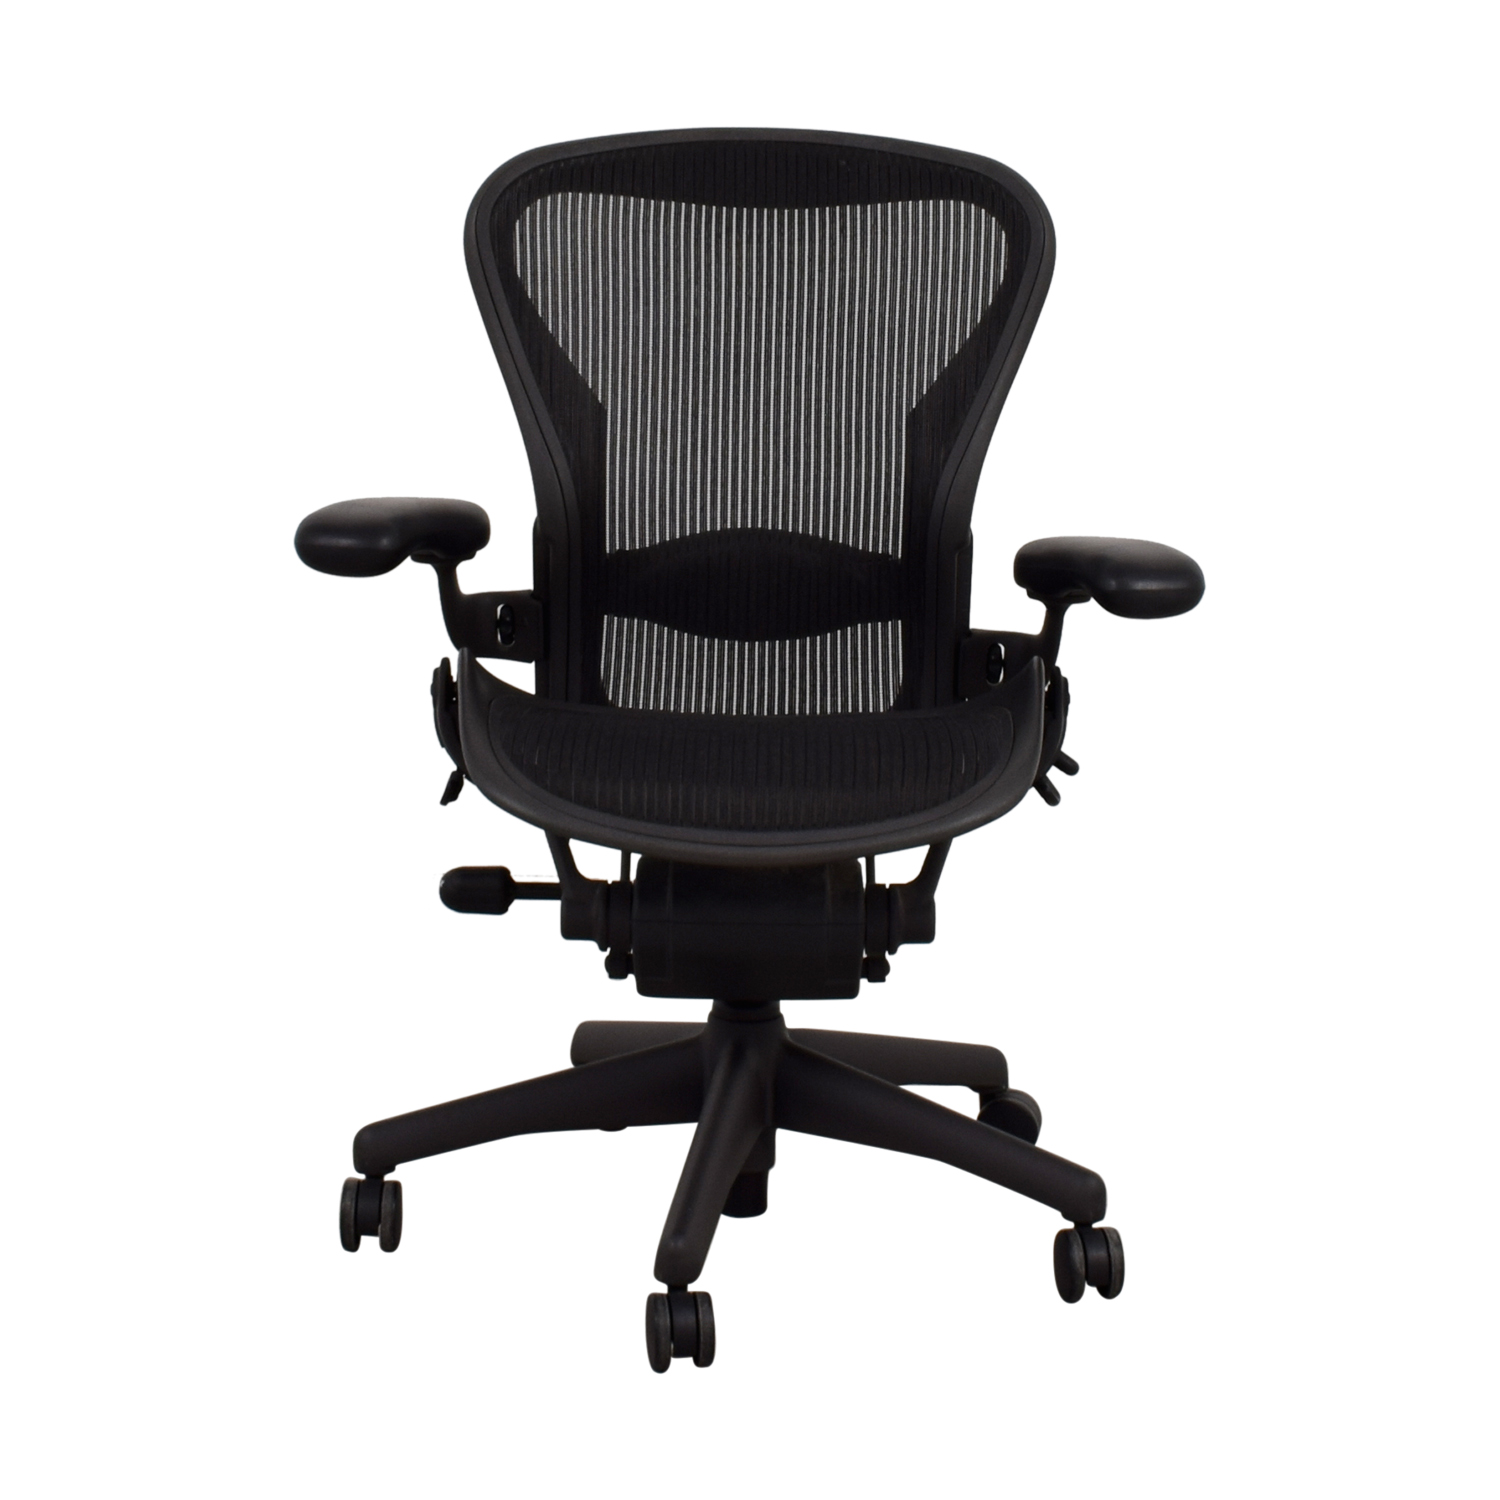 d1bbc7c929f 74% OFF - Herman Miller Herman Miller Aeron Black Chair   Chairs